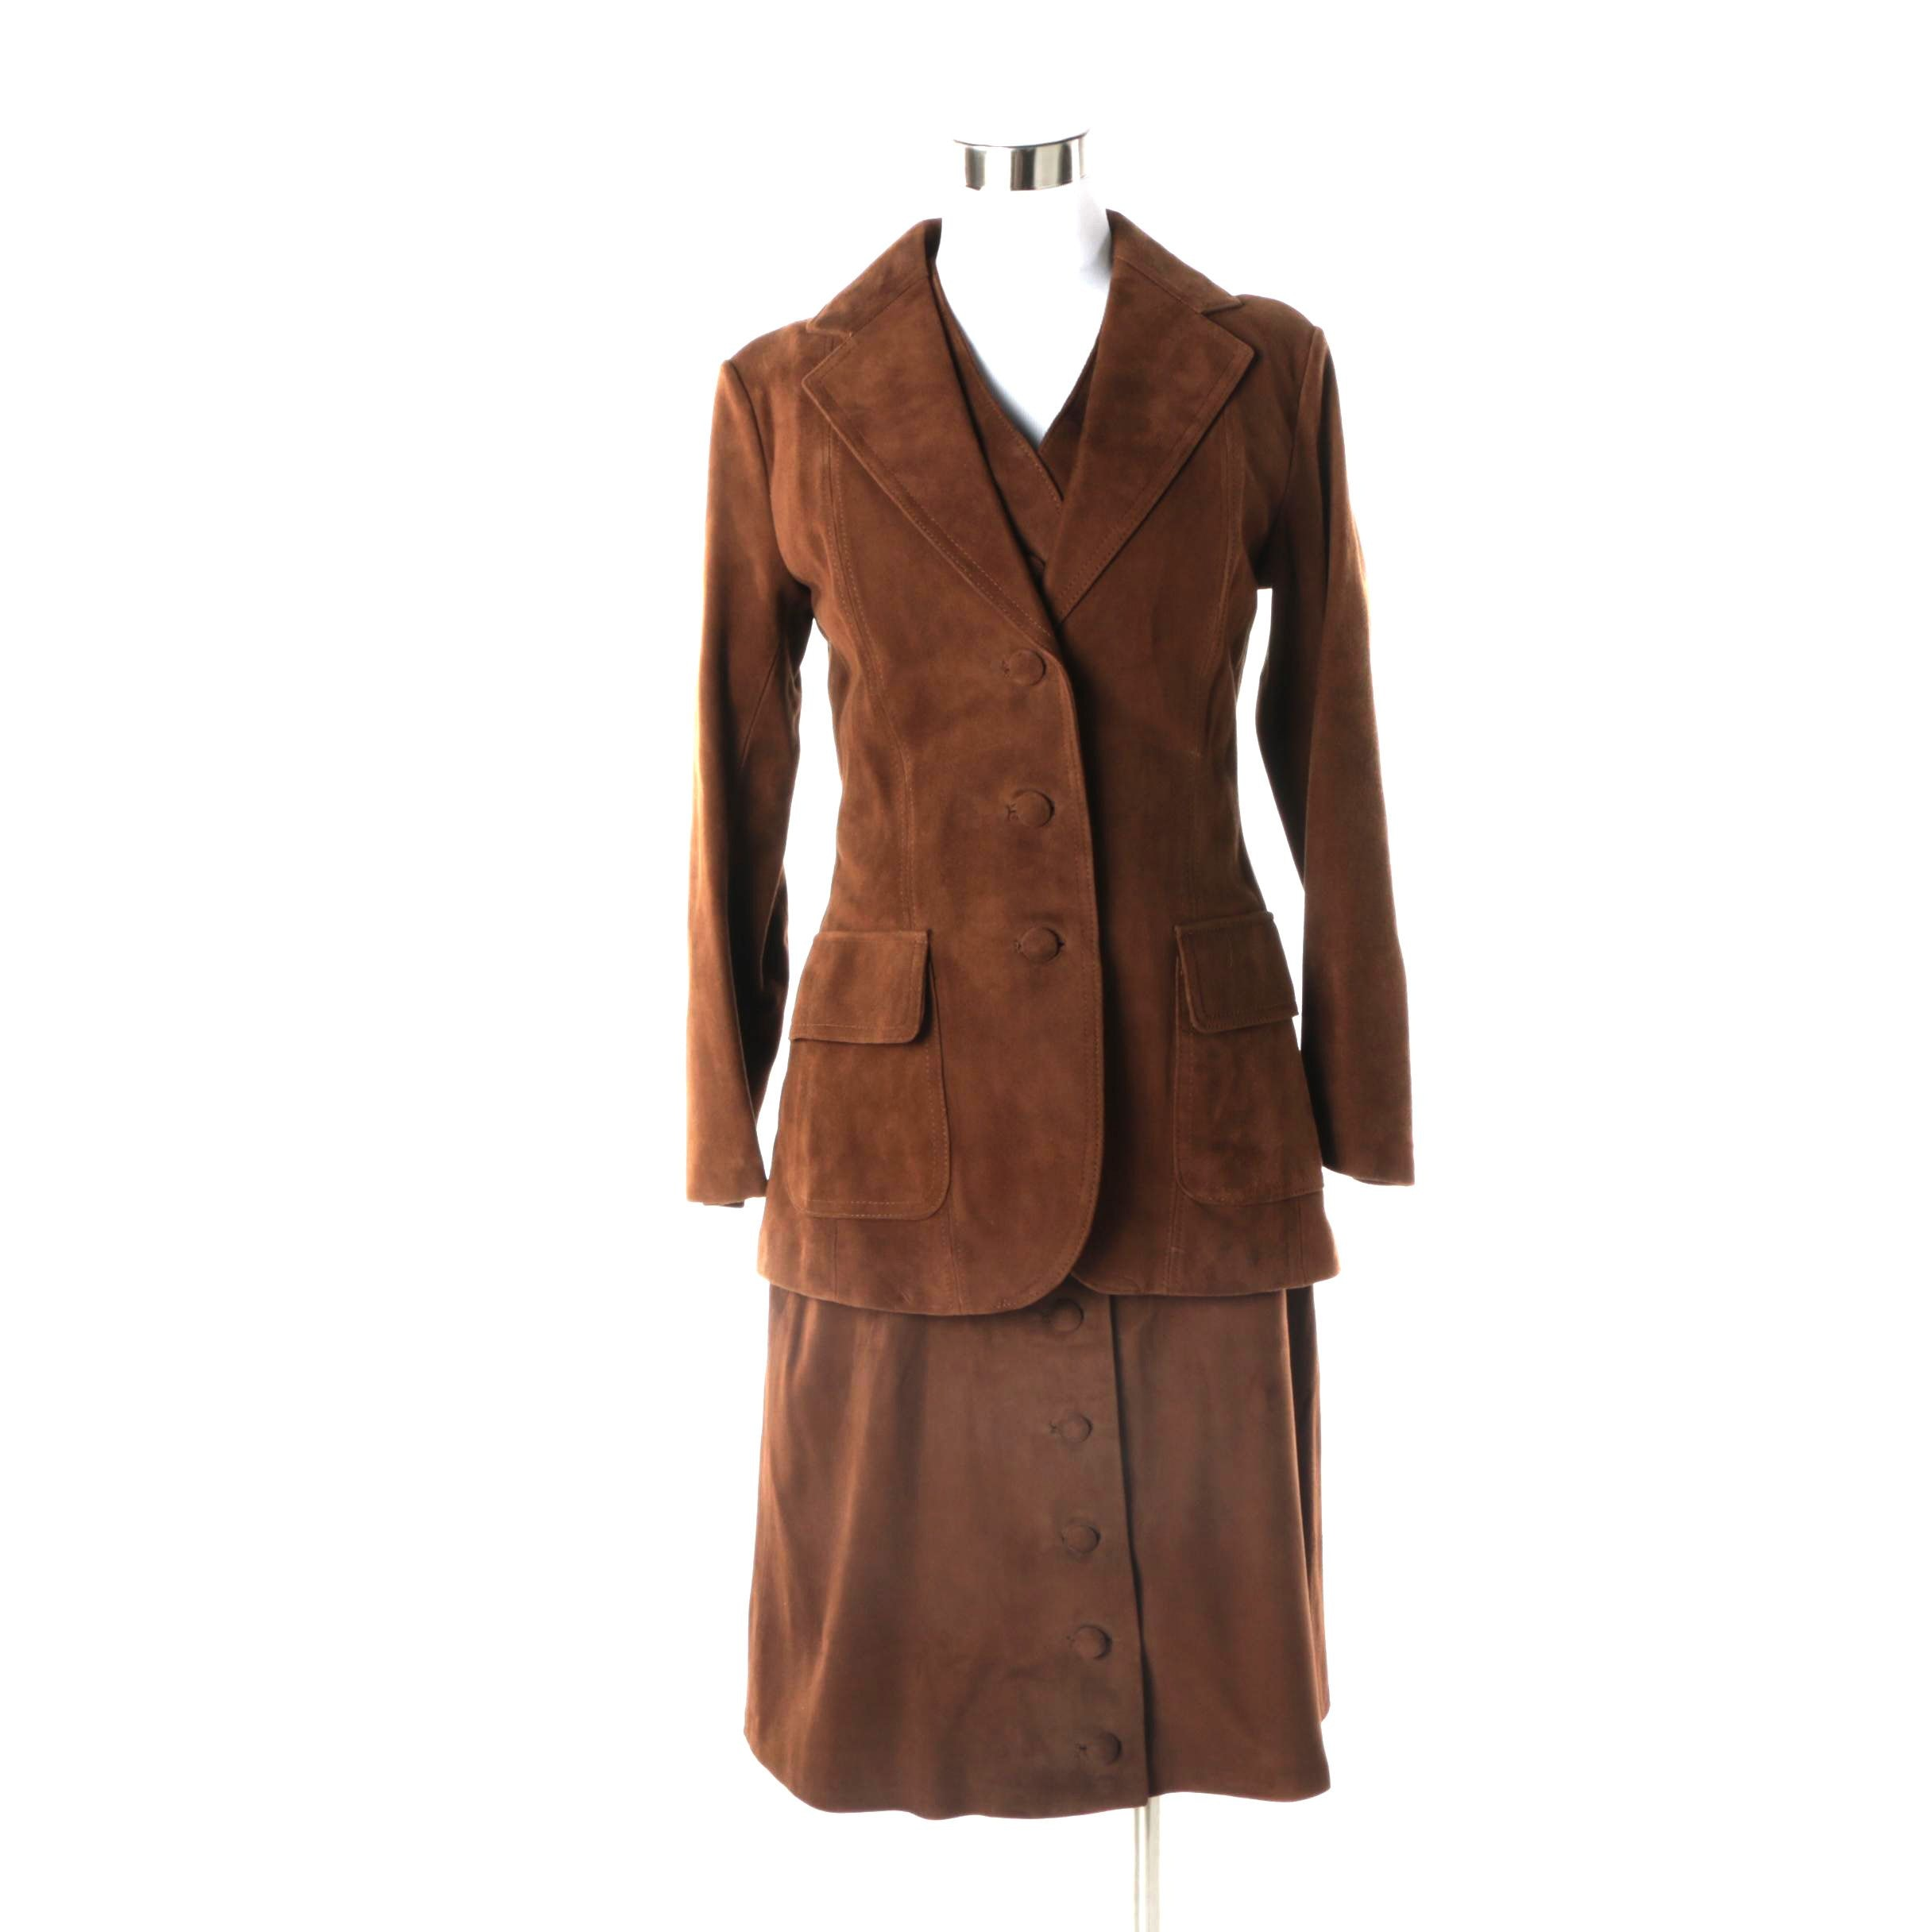 Women's Vintage Brown Suede Three-Piece Skirt Suit